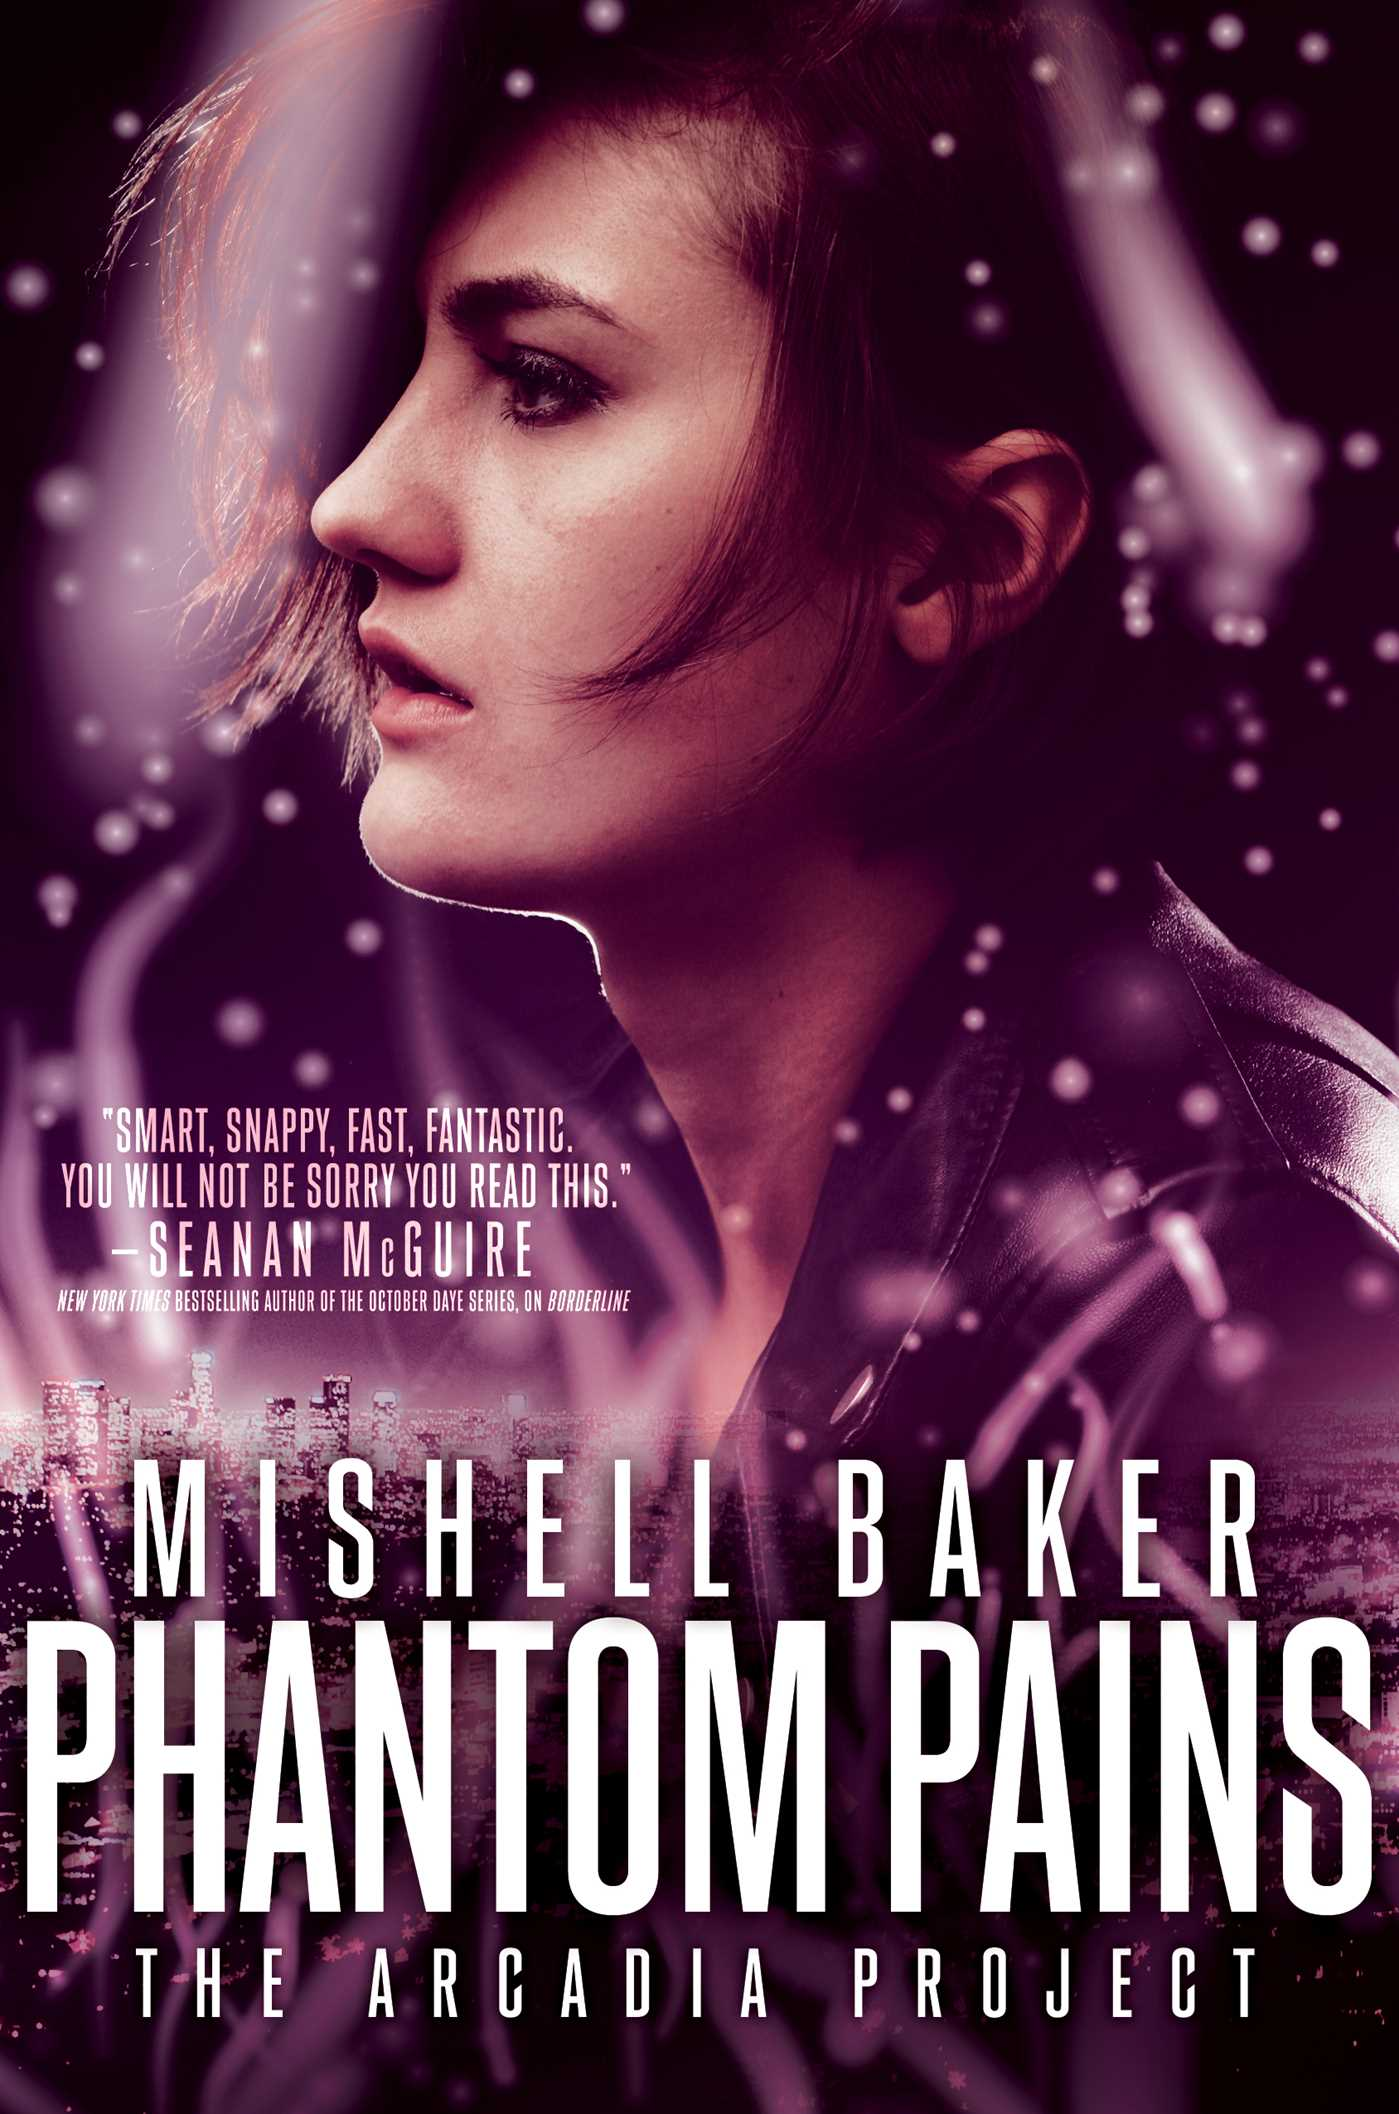 Phantom pains 9781481480178 hr